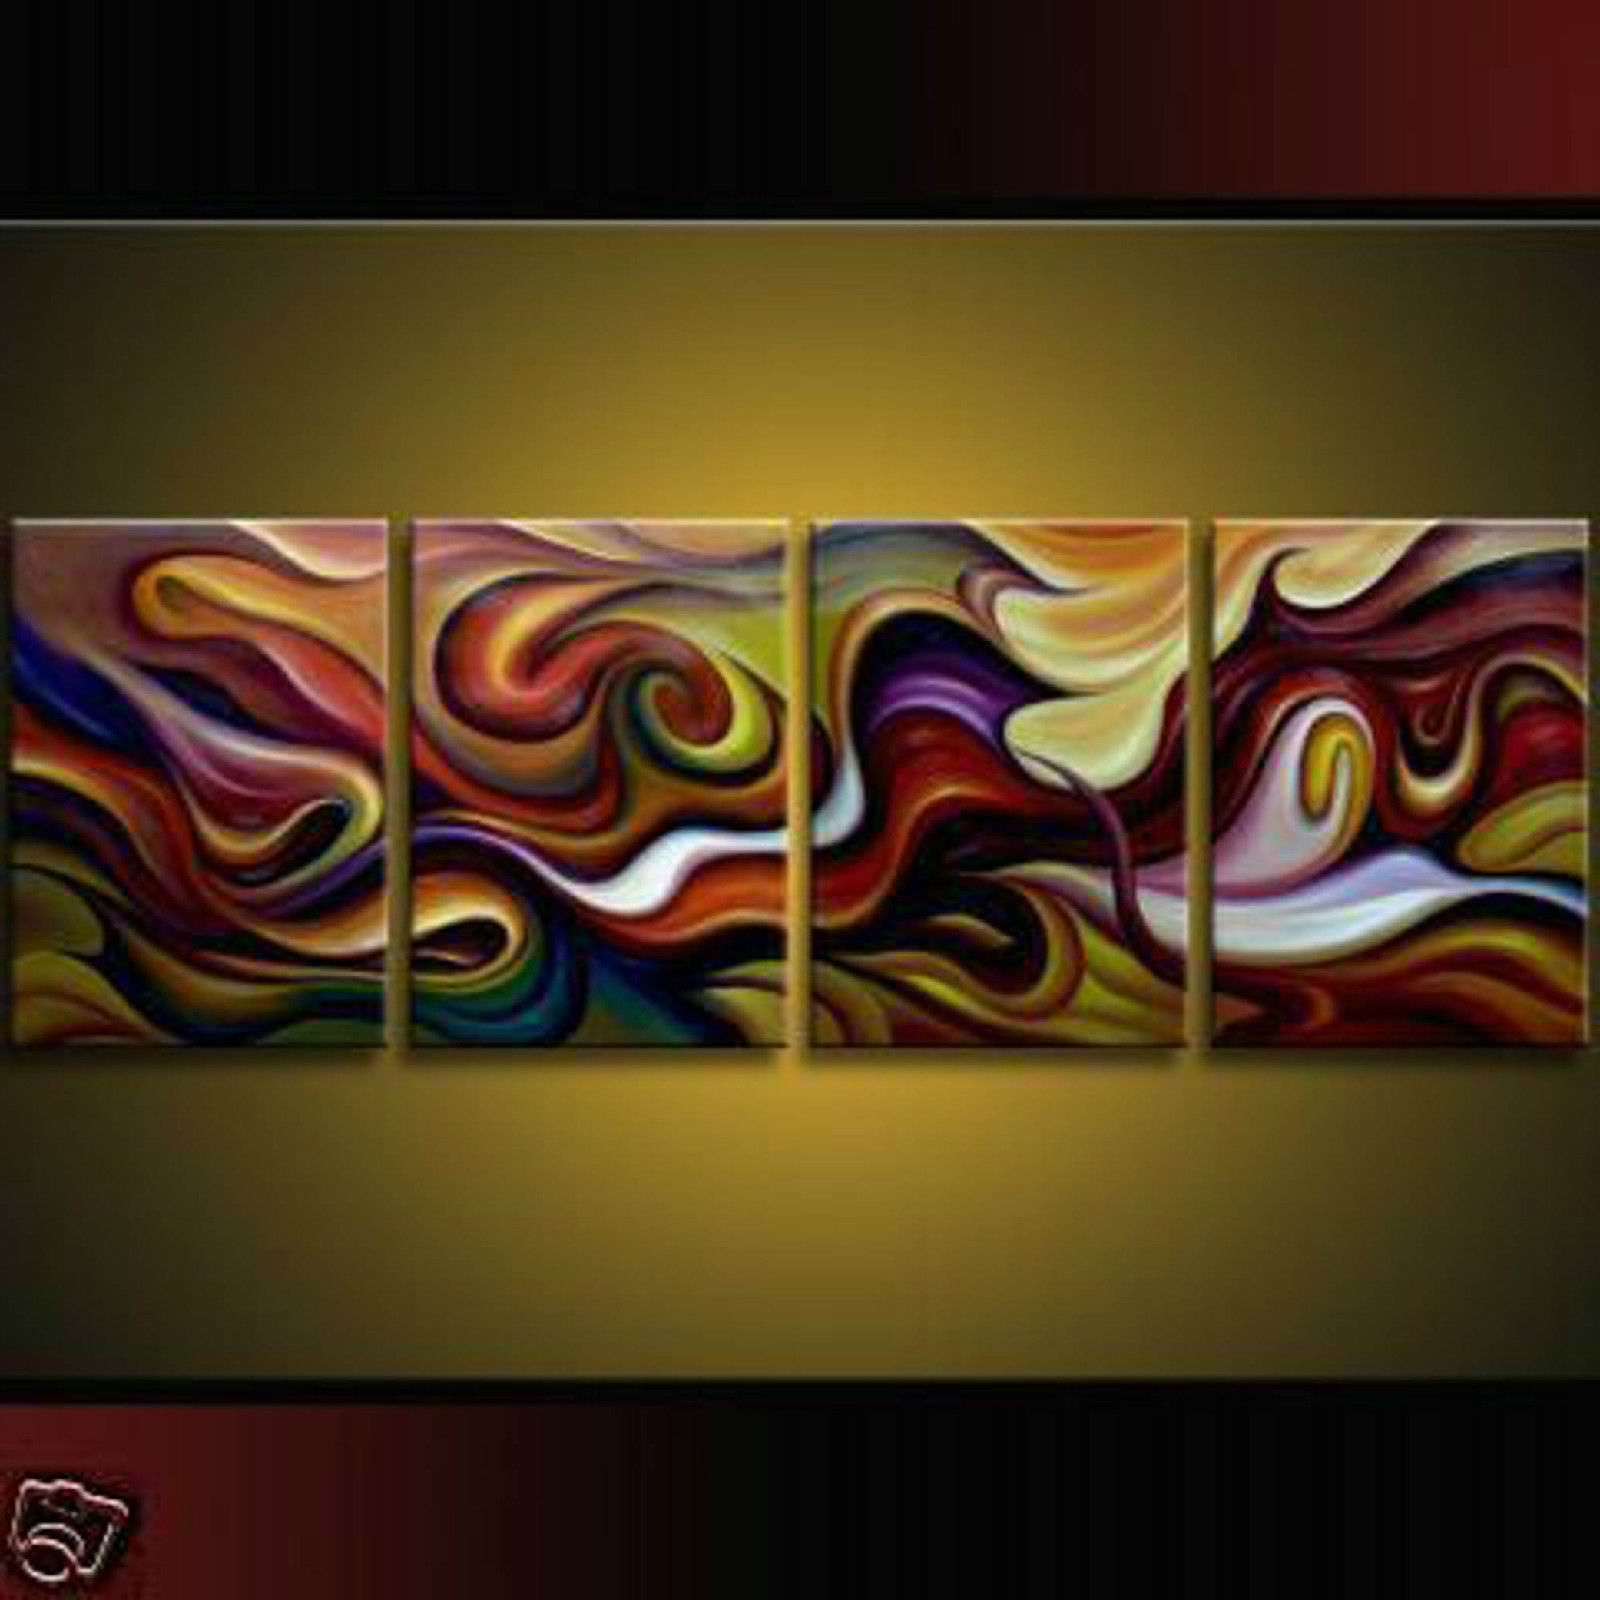 Popular Modern Abstract Art Oil Painting Canvas – Dma Homes (View 11 of 15)